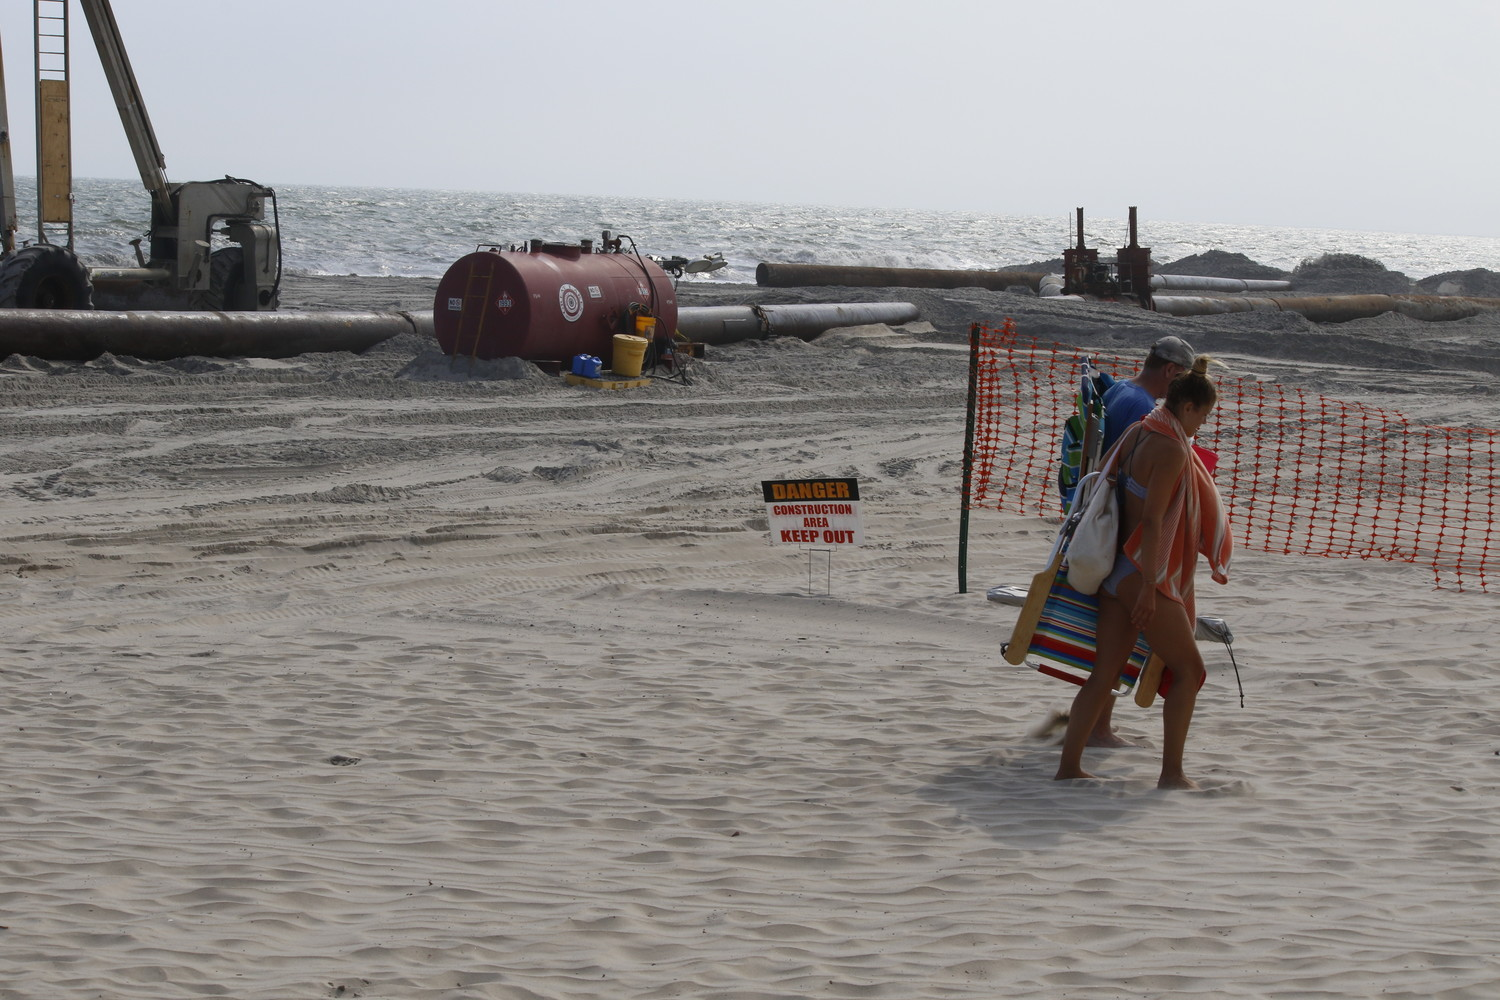 Amid a heat wave, beachgoers walked to an open beach on Tuesday along a path next to the work site where the Army Corps of Engineers is replenishing sand.